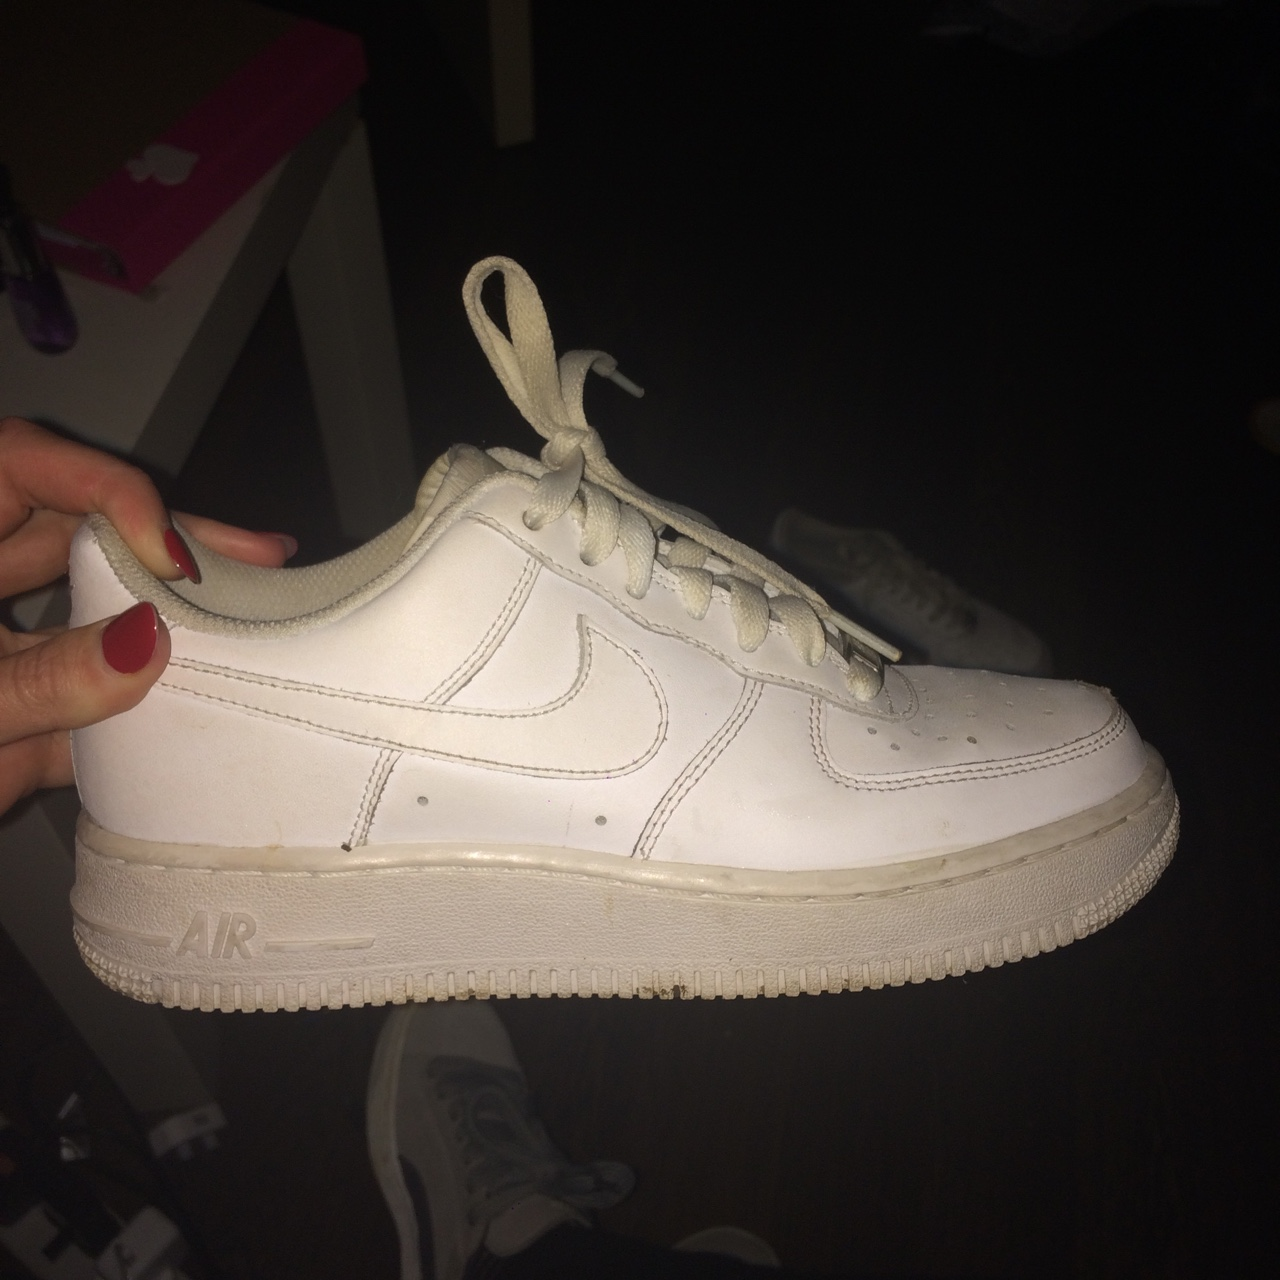 air force ones size 4